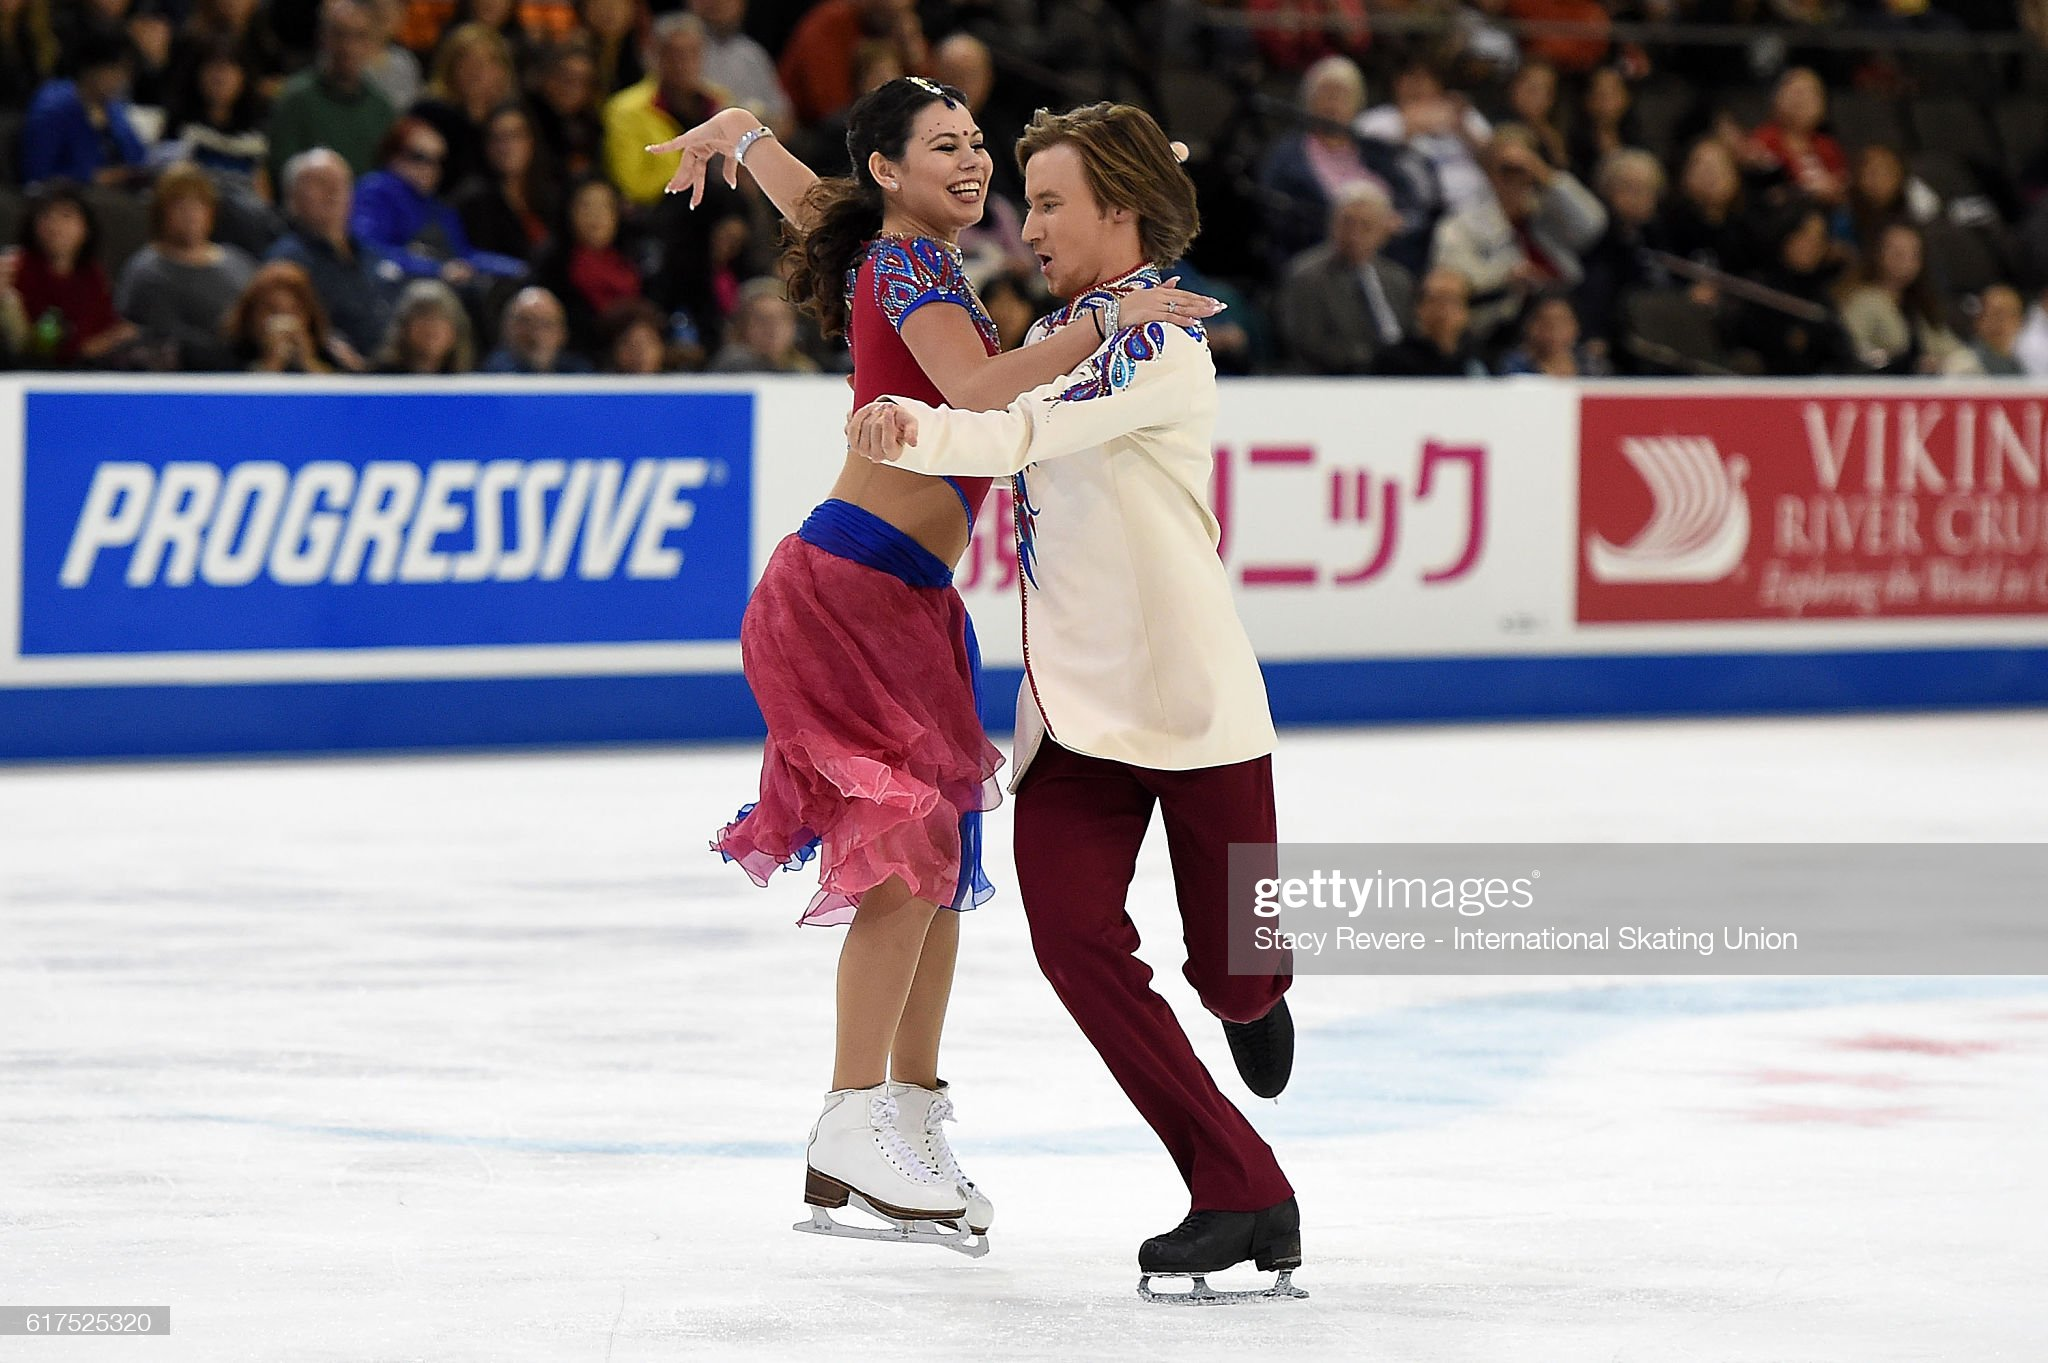 https://media.gettyimages.com/photos/elena-ilinykh-and-ruslan-zhiganshin-of-russia-perform-during-the-ice-picture-id617525320?s=2048x2048